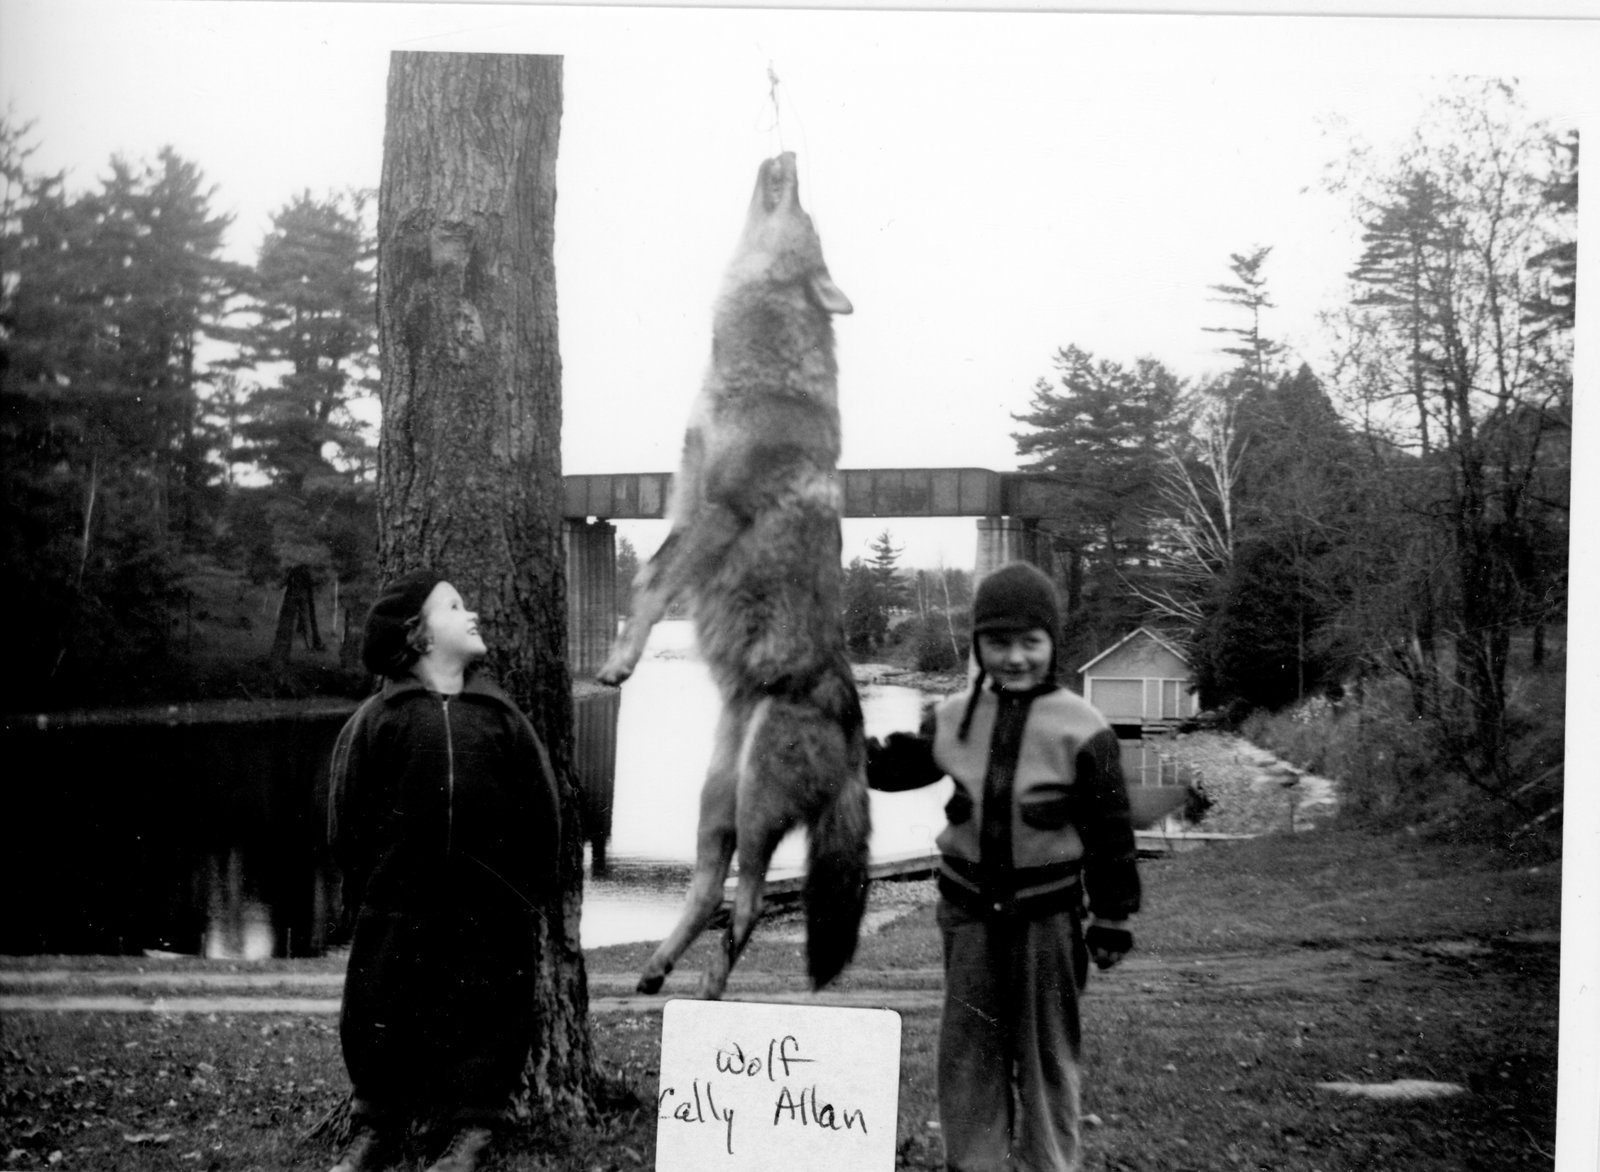 Callie and Allan Alford with wolf at Chaffey's Lock c.1950